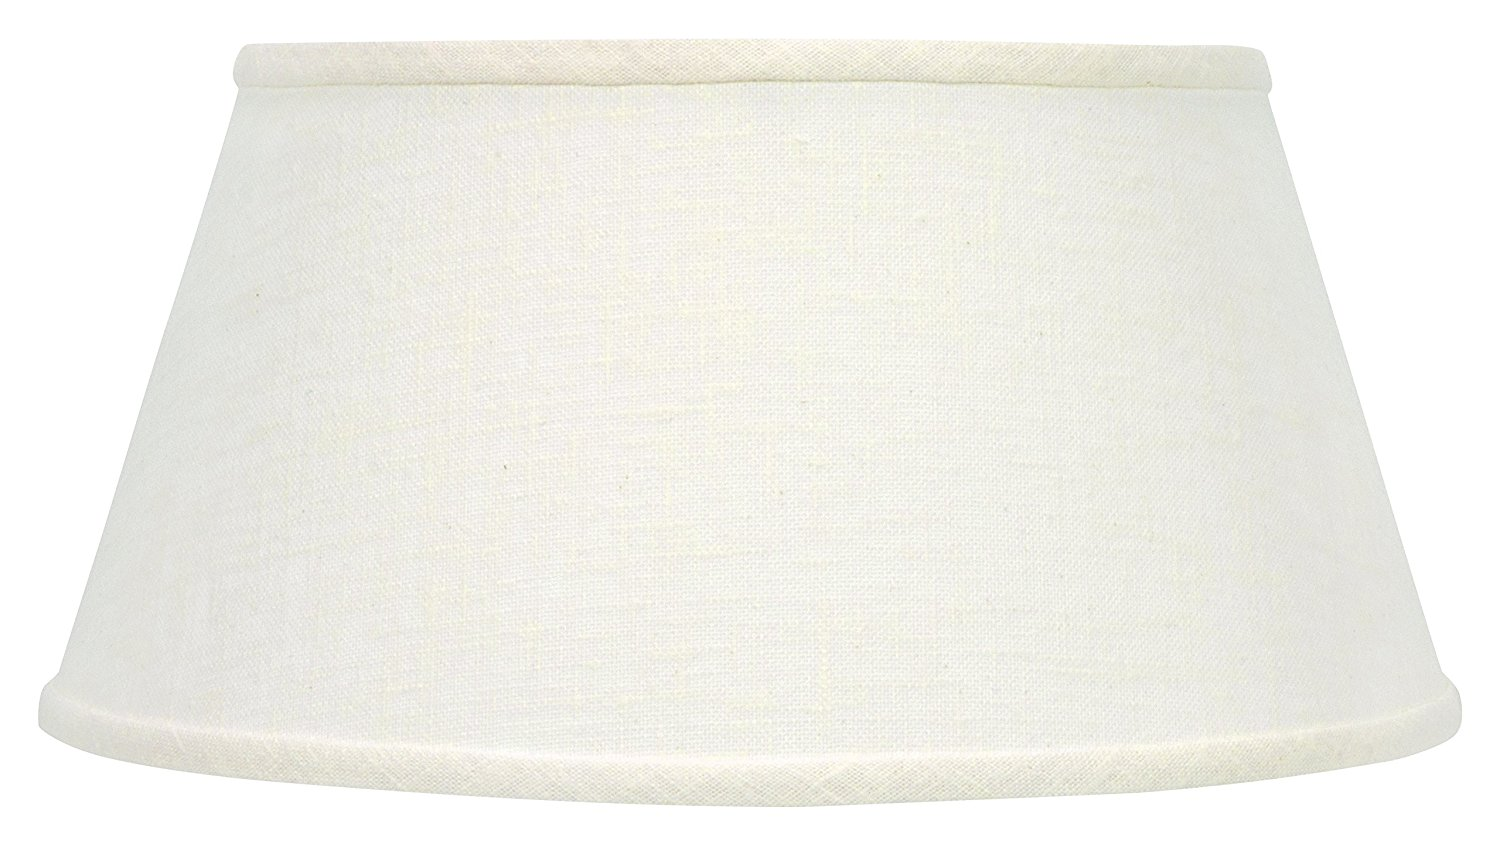 Upgradelights Bouillotte Lamp Shade 14 Inch White Linen